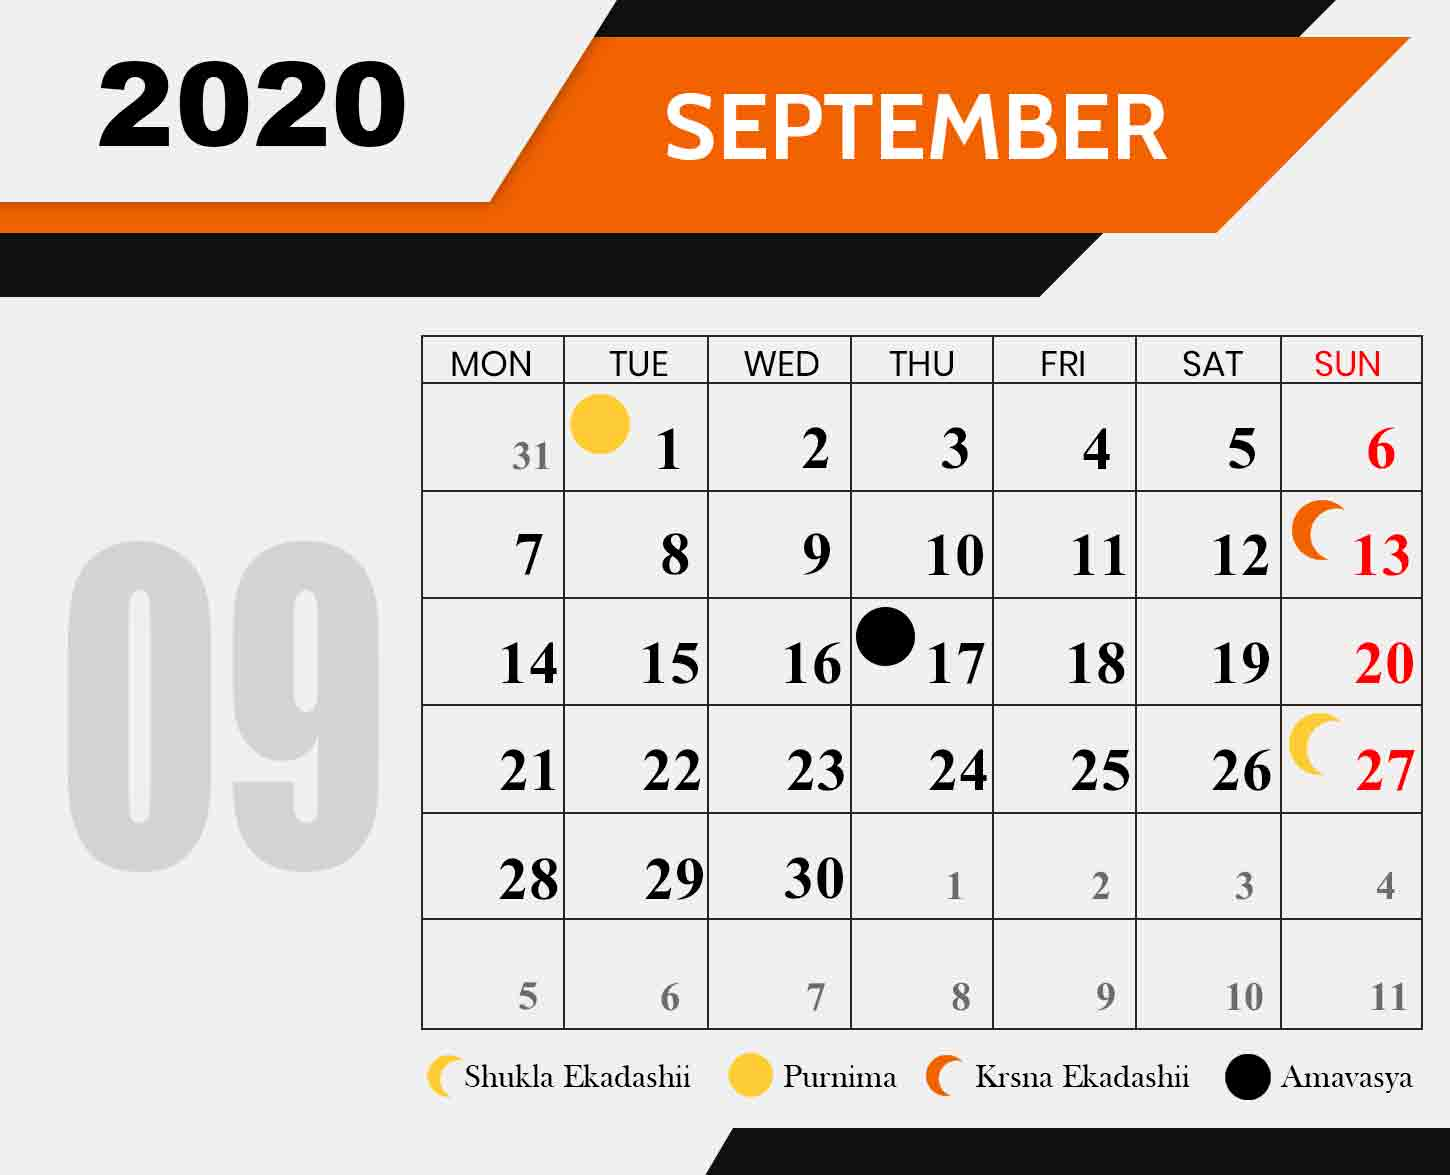 Ananda-Marga-Fasting-Chart-september-2020